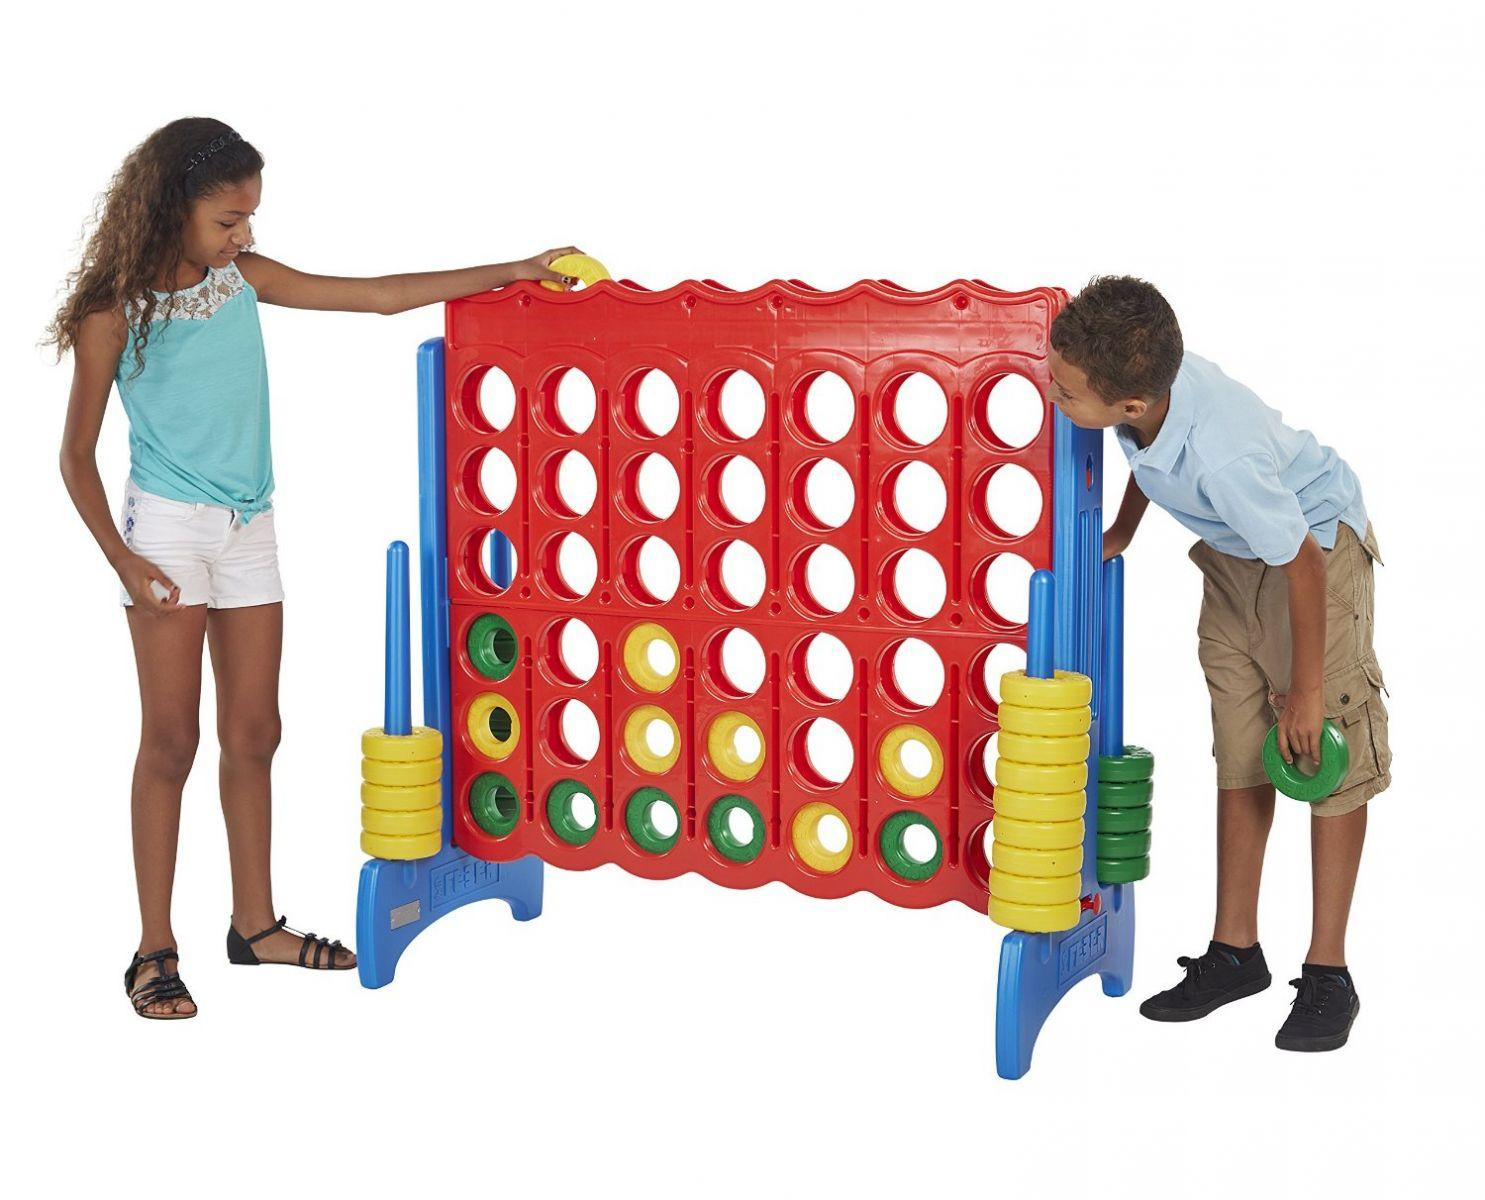 Giant Connect 4 Carnival Game Rental in Chicago